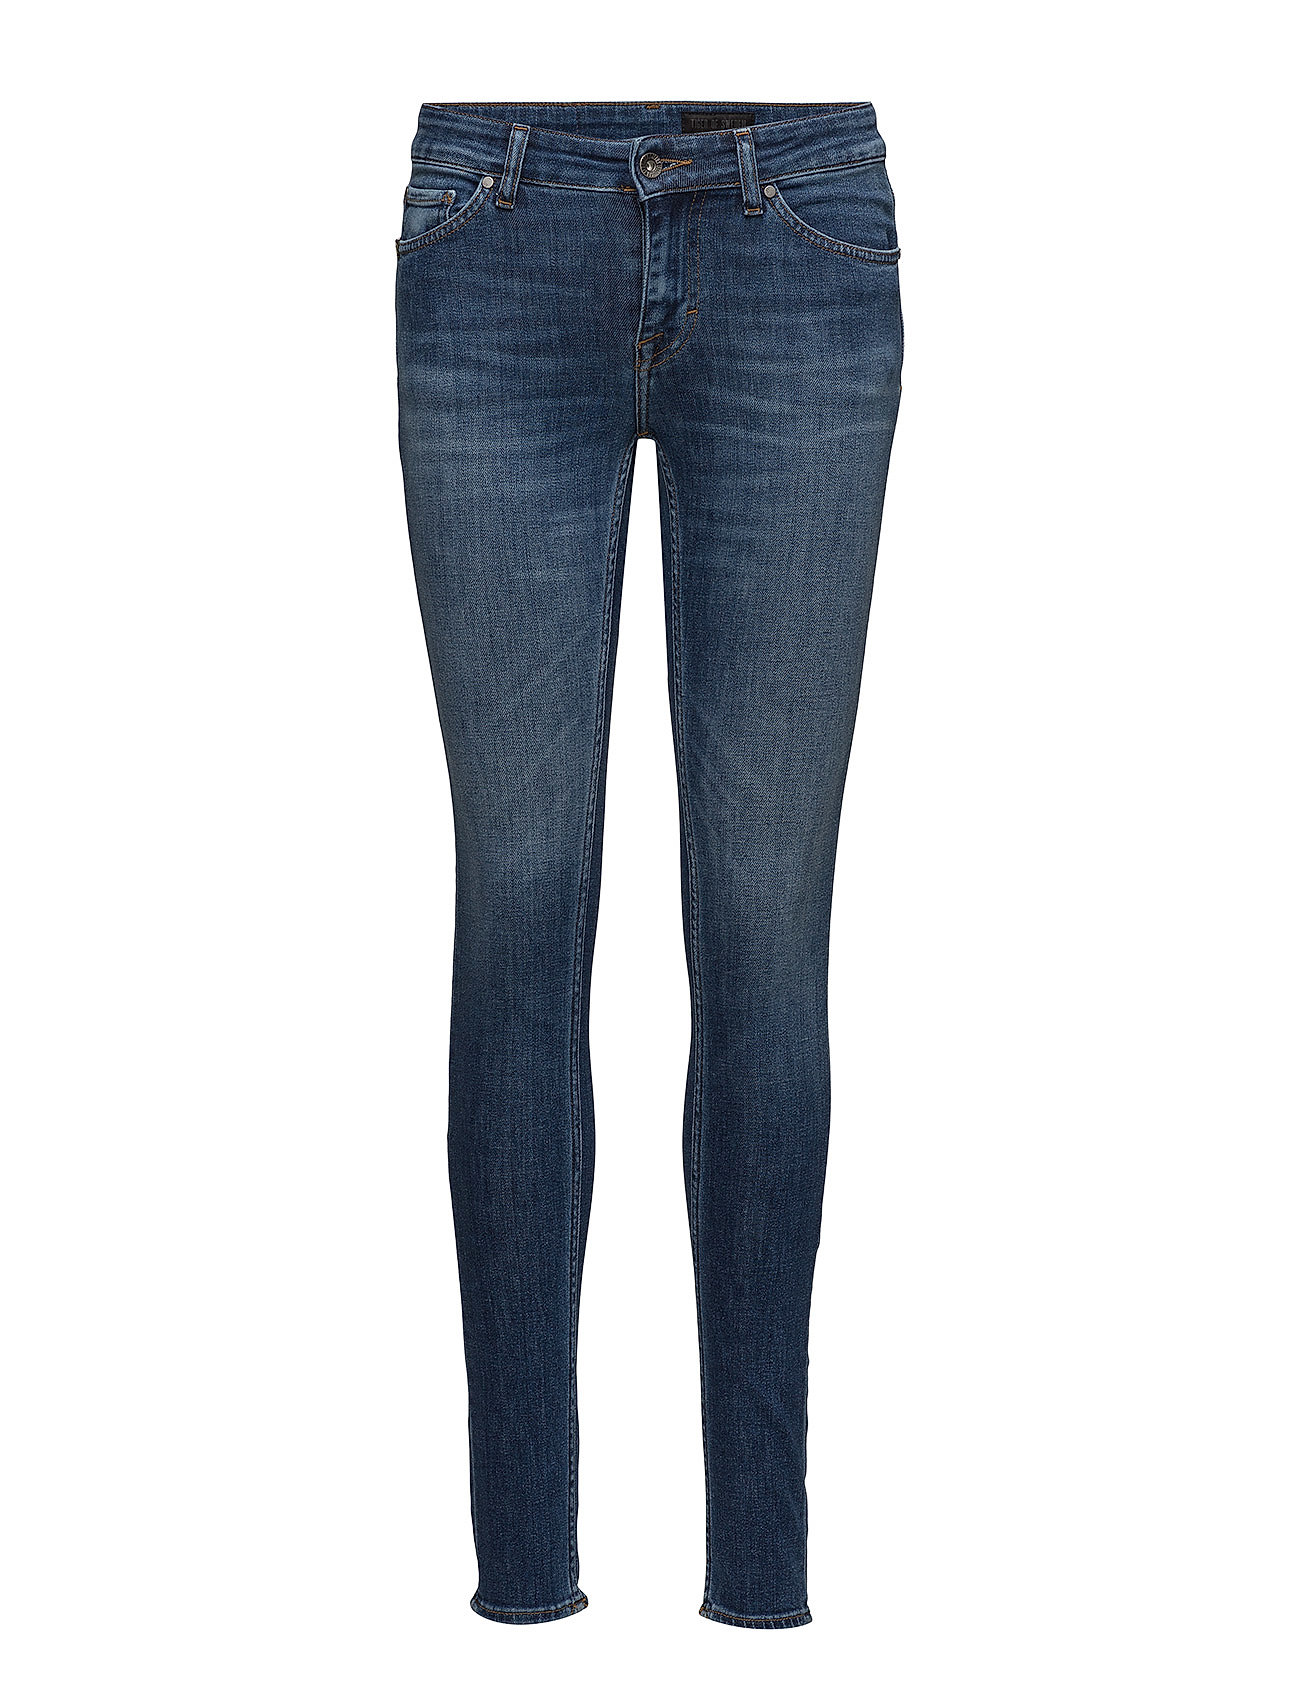 Tiger of Sweden Jeans SLIGHT - MEDIUM BLUE